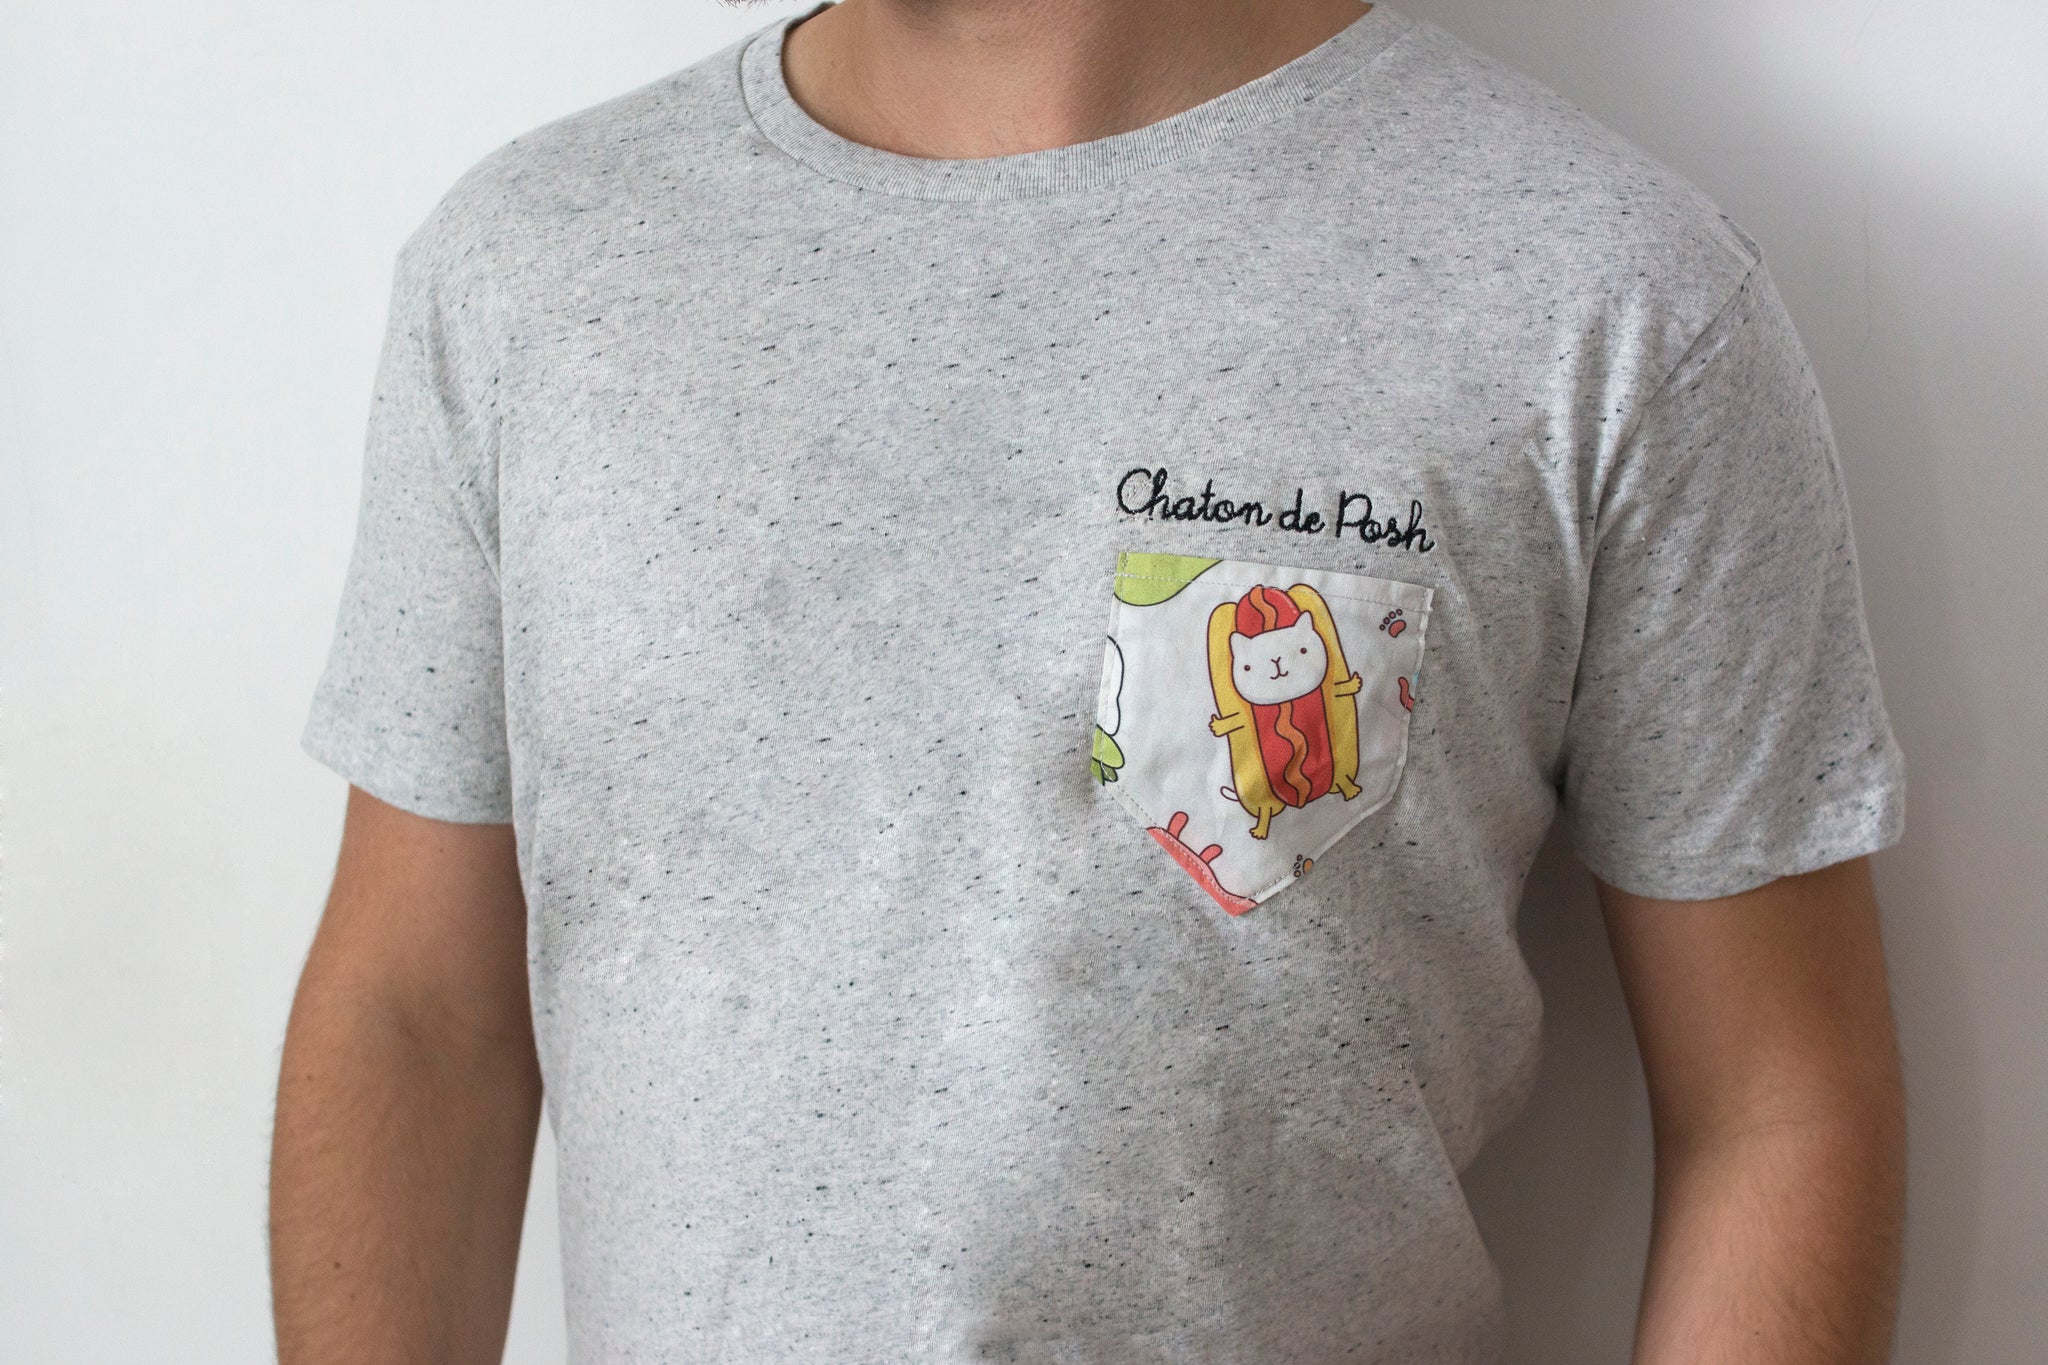 T-shirt Chaton de Posh 2